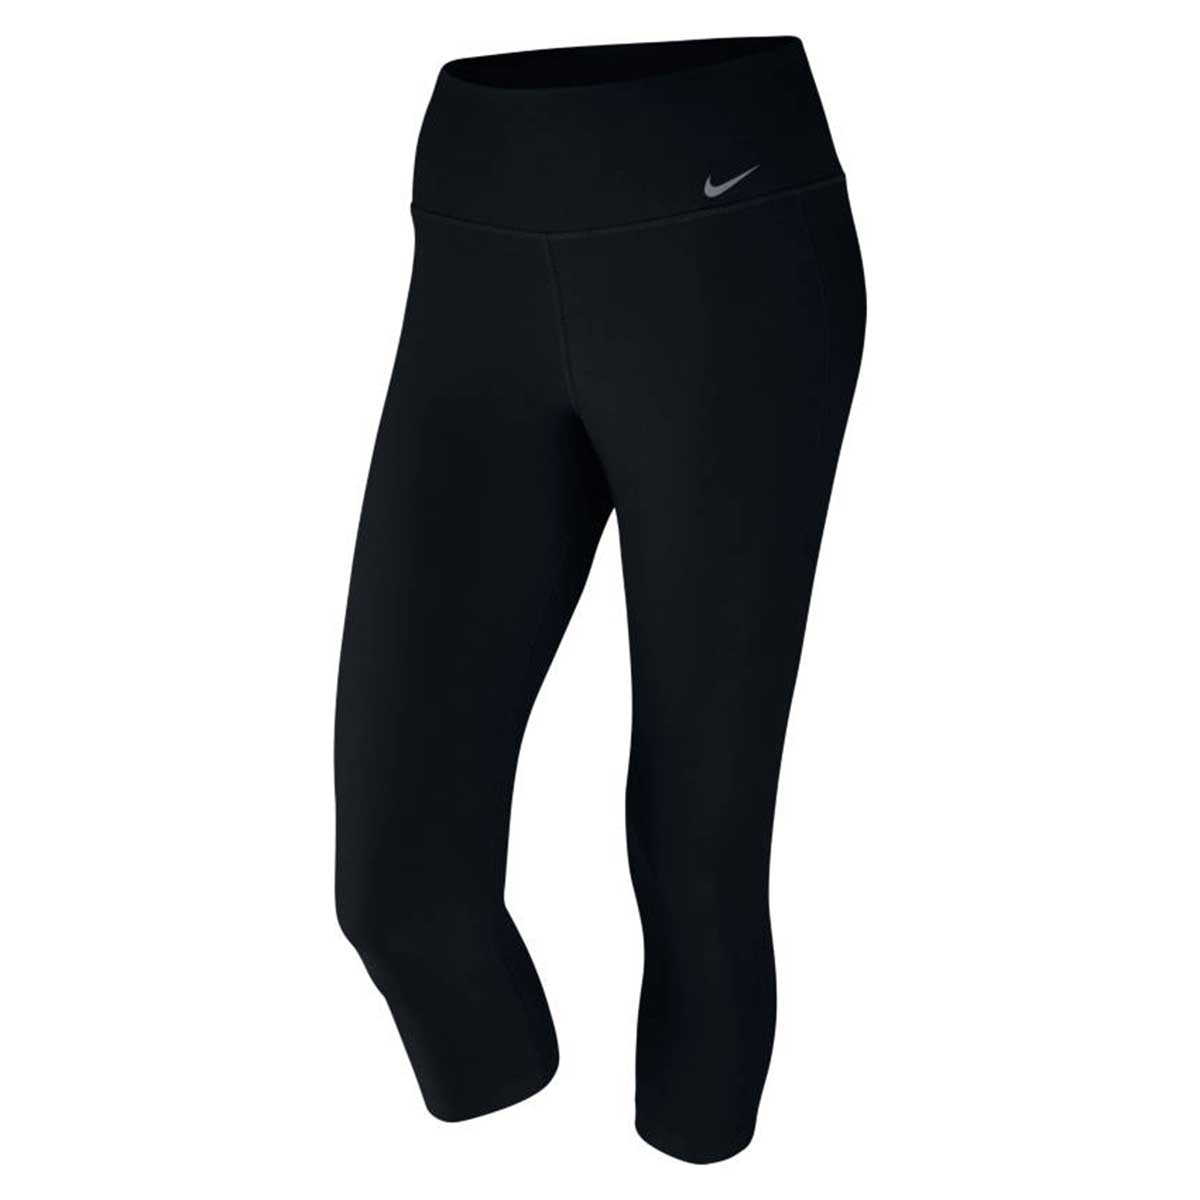 f8c4bbf983a752 Buy Nike Womens Training Dri-Fit 3/4 Tights Online India|Nike Women Running  Clothing